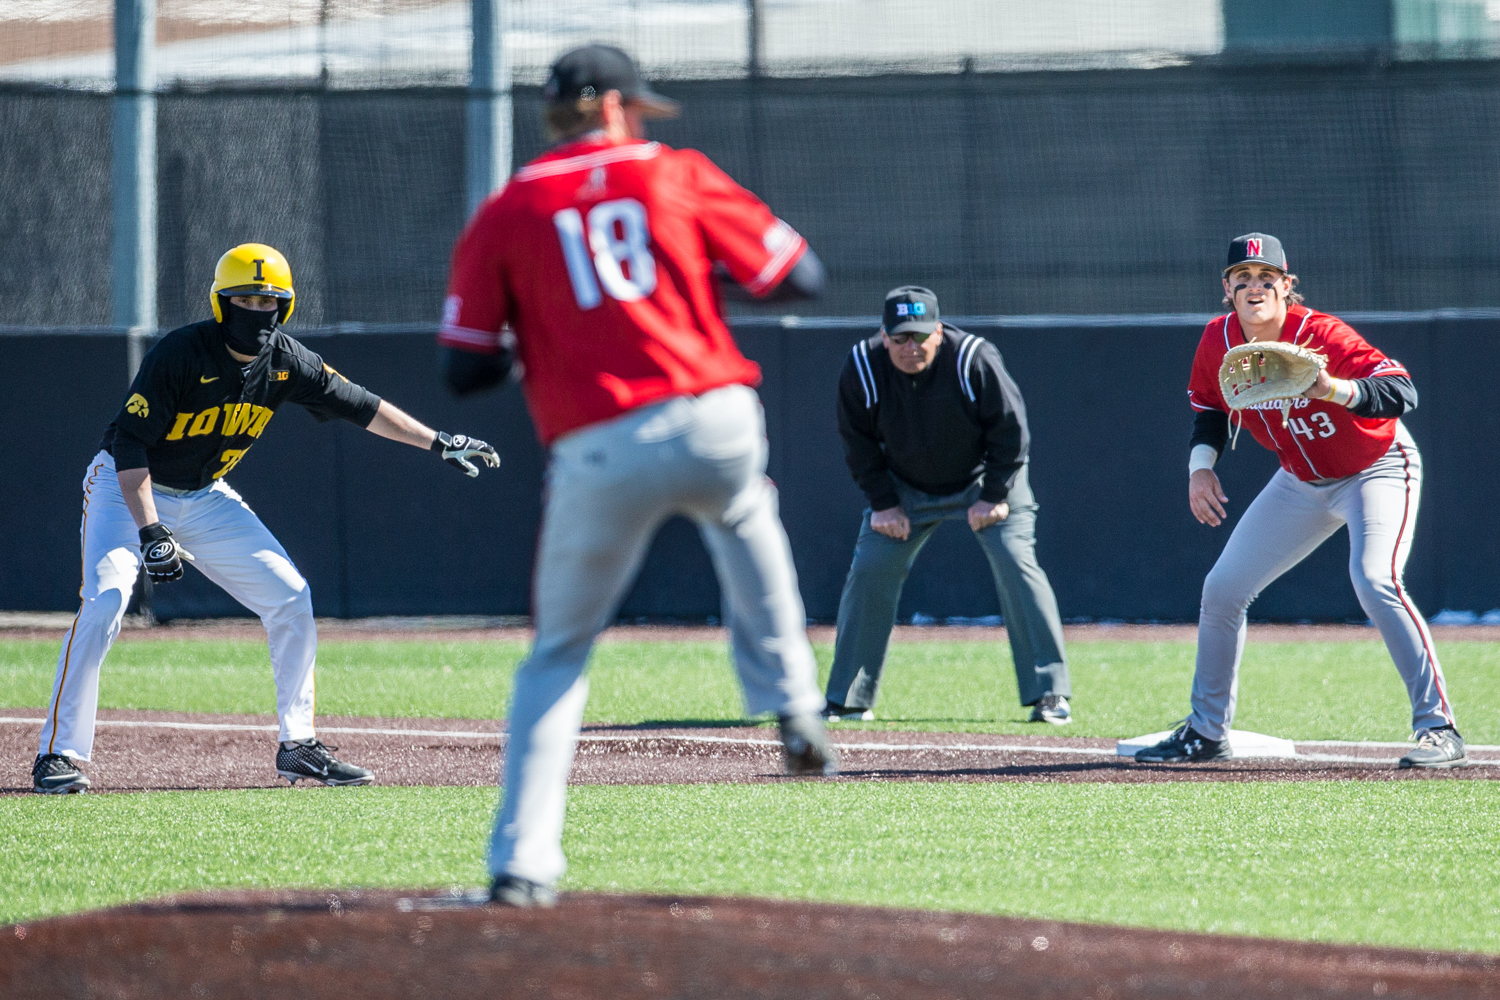 CSUN+first+baseman+Wesley+Ghan-Gibson+%2843%29+awaits+a+pickoff+throw+during+the+first+game+of+a+baseball+doubleheader+between+Iowa+and+Cal-State+Northridge+at+Duane+Banks+Field+on+Sunday%2C+March+17%2C+2019.+The+Hawkeyes+defeated+the+Matadors%2C+5-4.